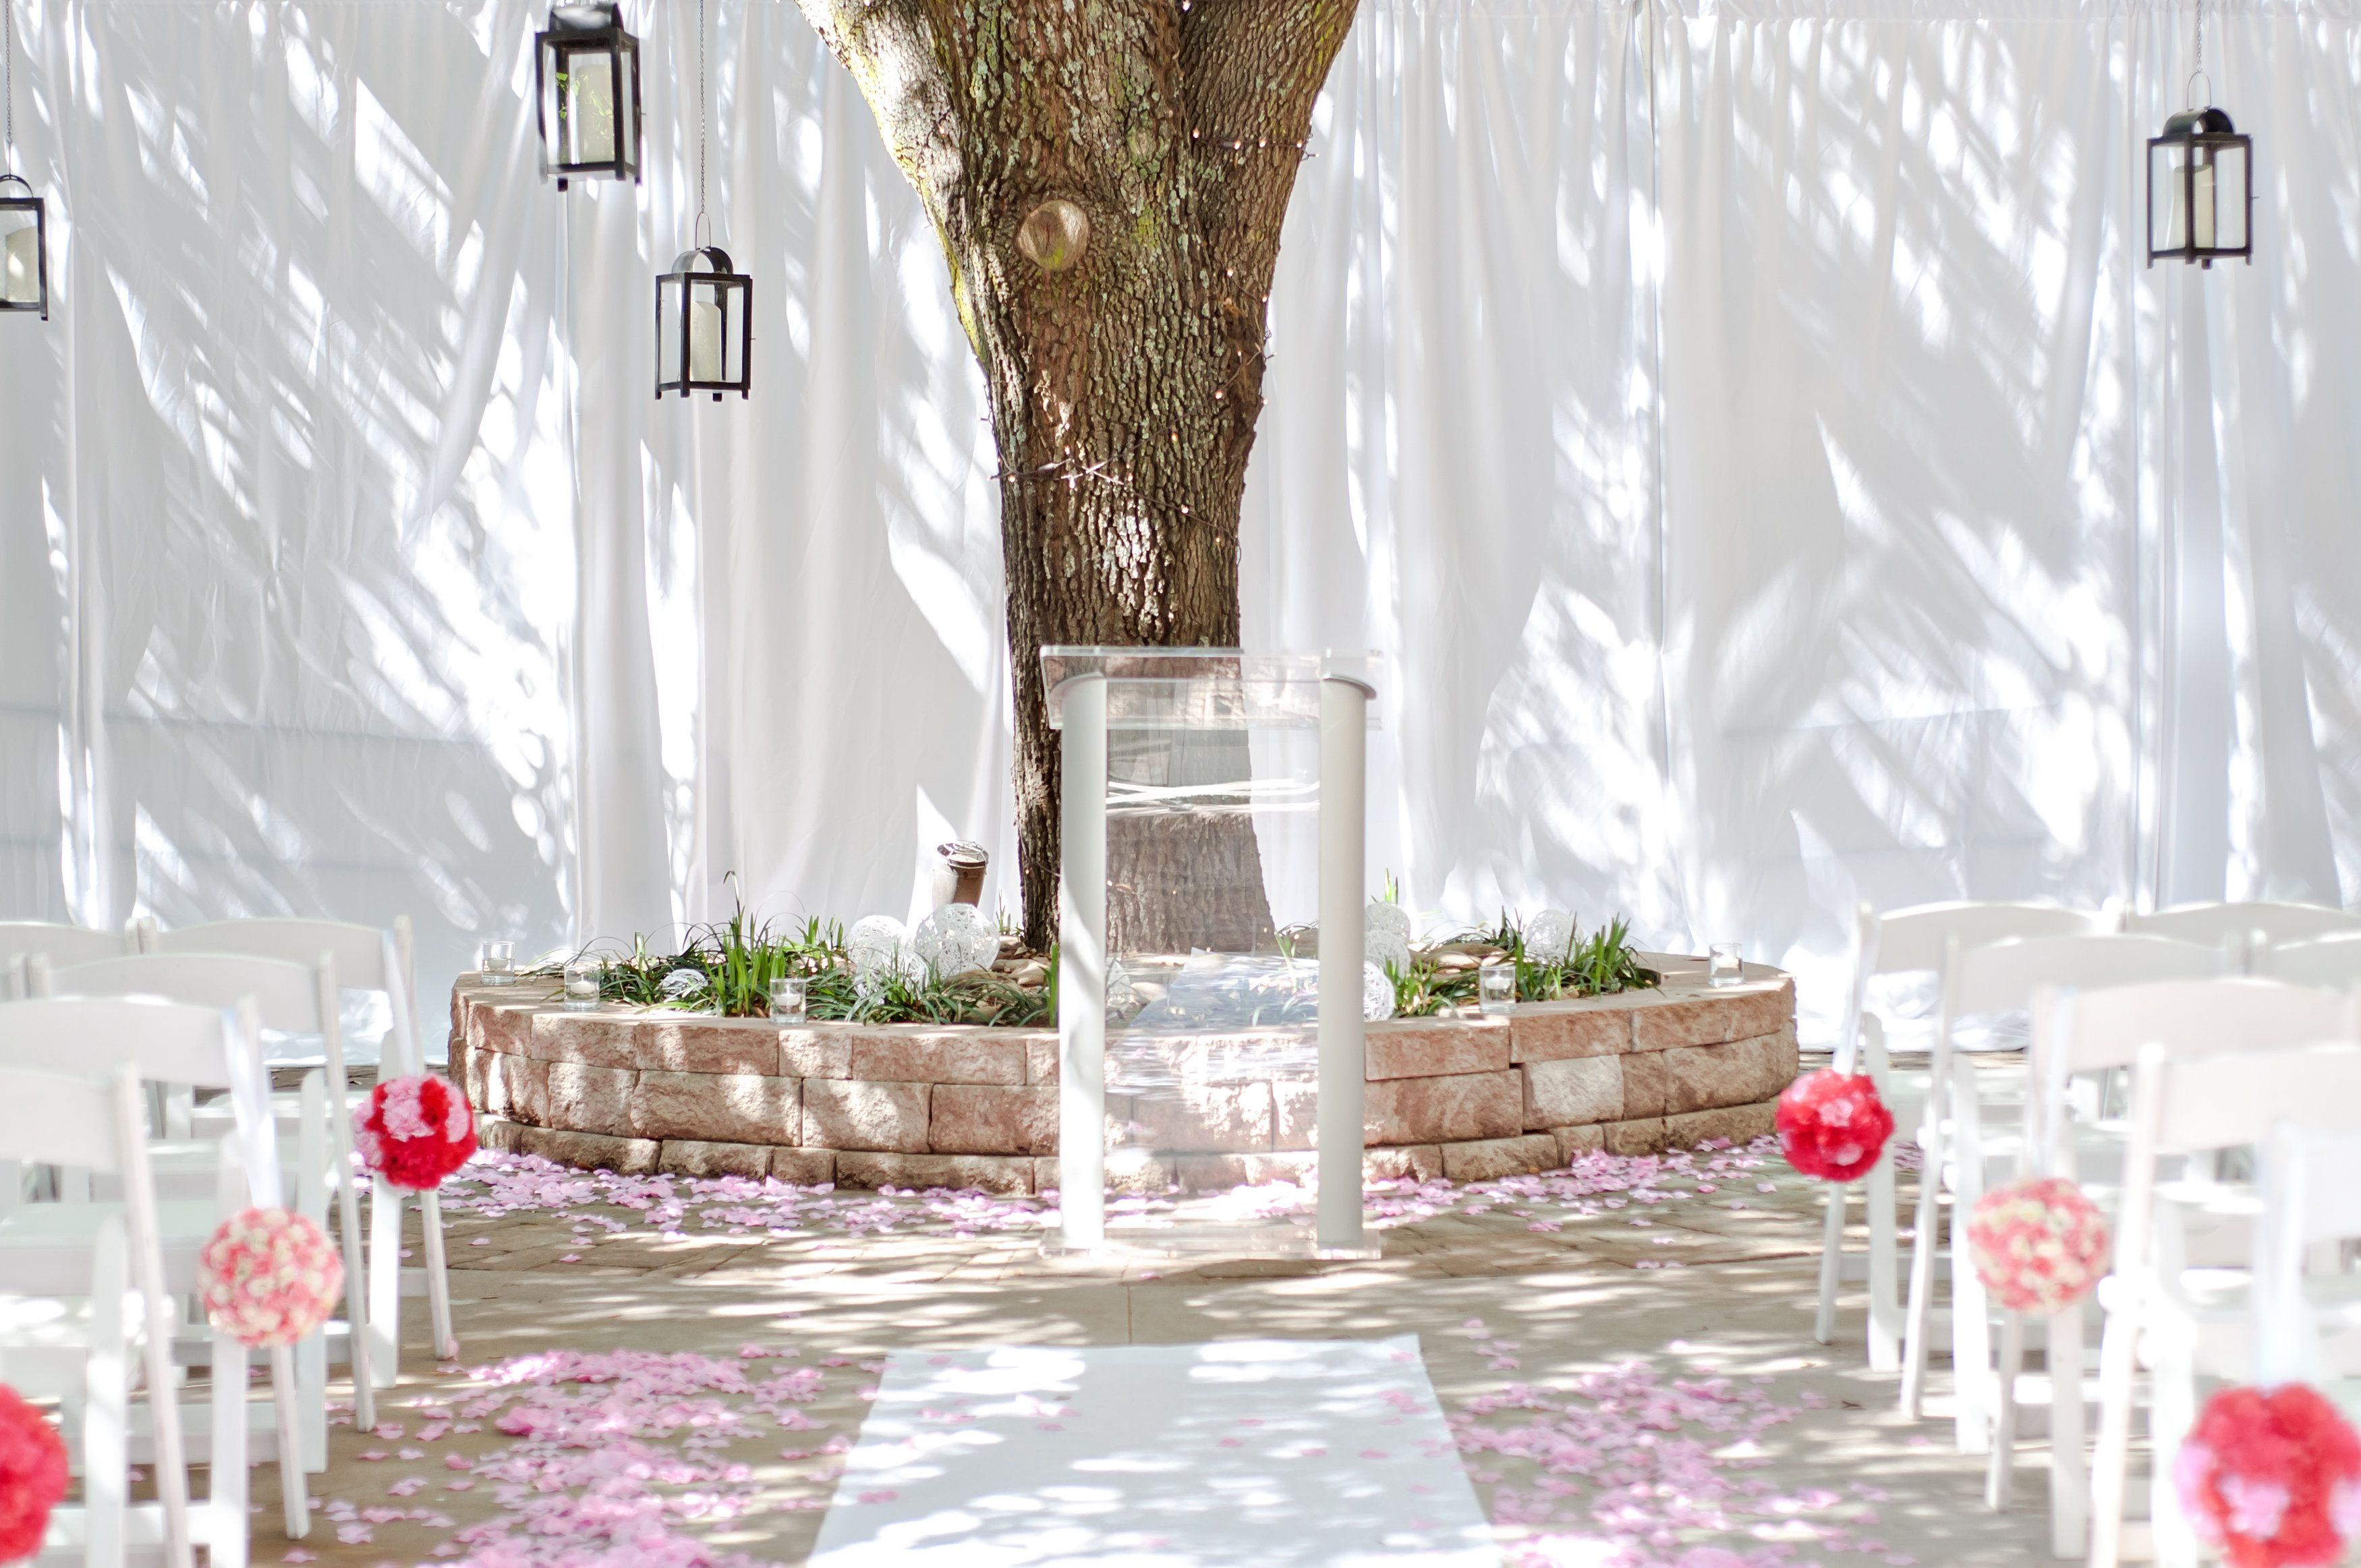 I had ceremony at the courtyard and made the pom poms #weddign #diy #courtyard